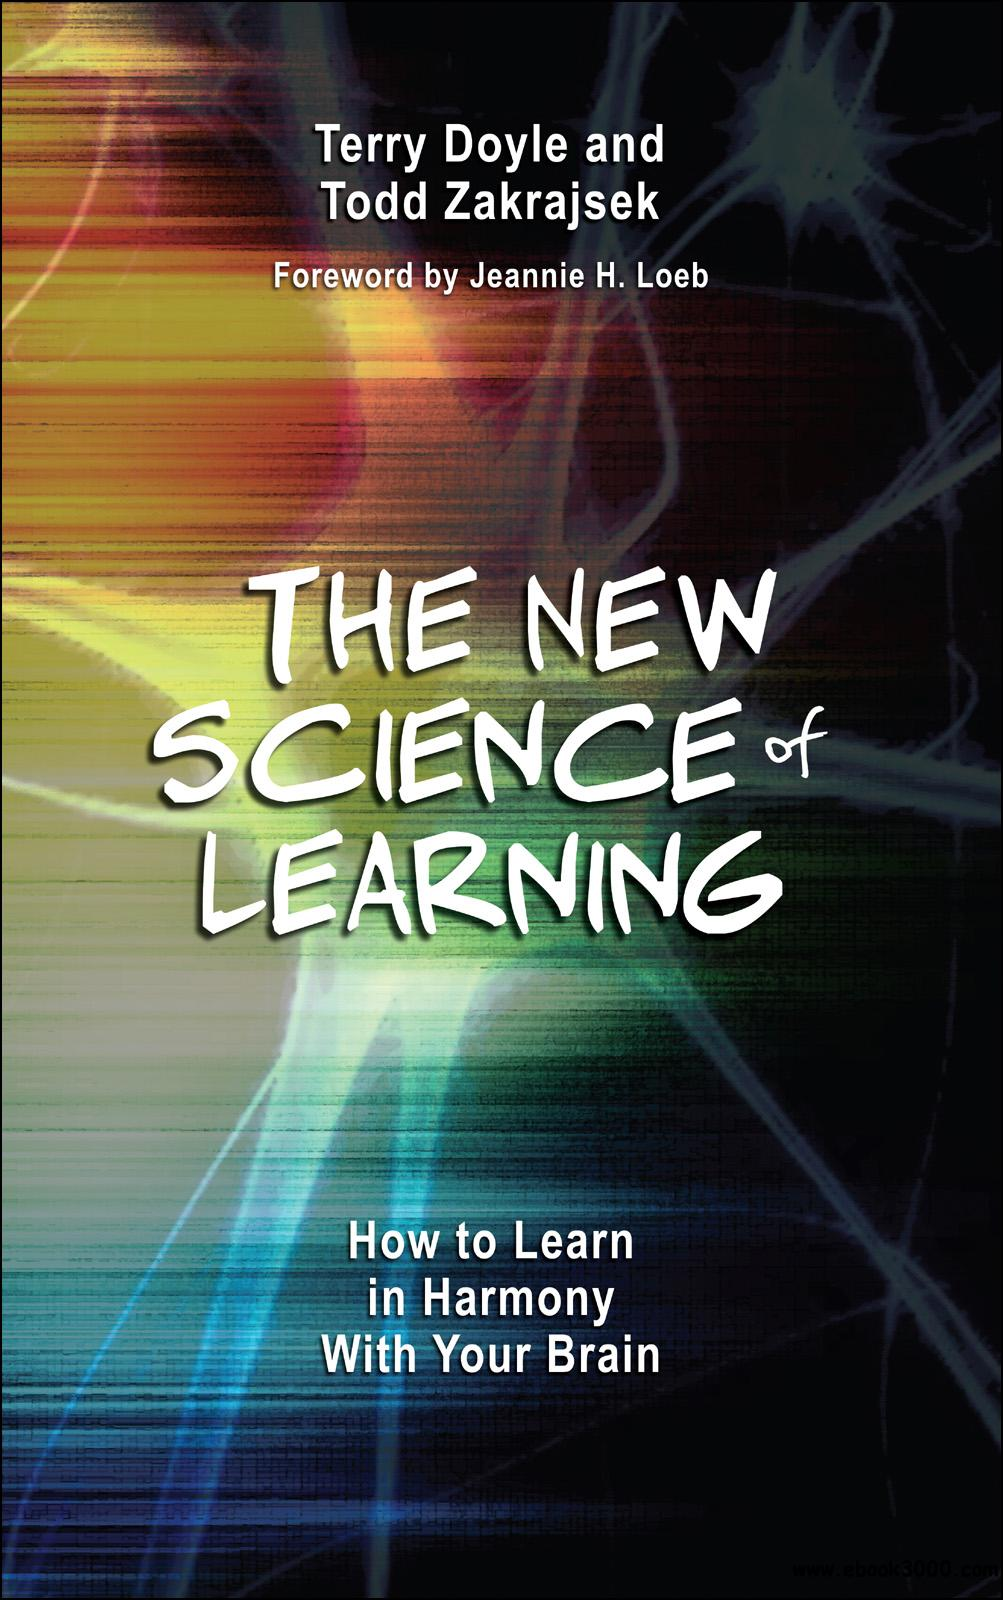 The New Science of Learning: How to Learn in Harmony With Your Brain free download